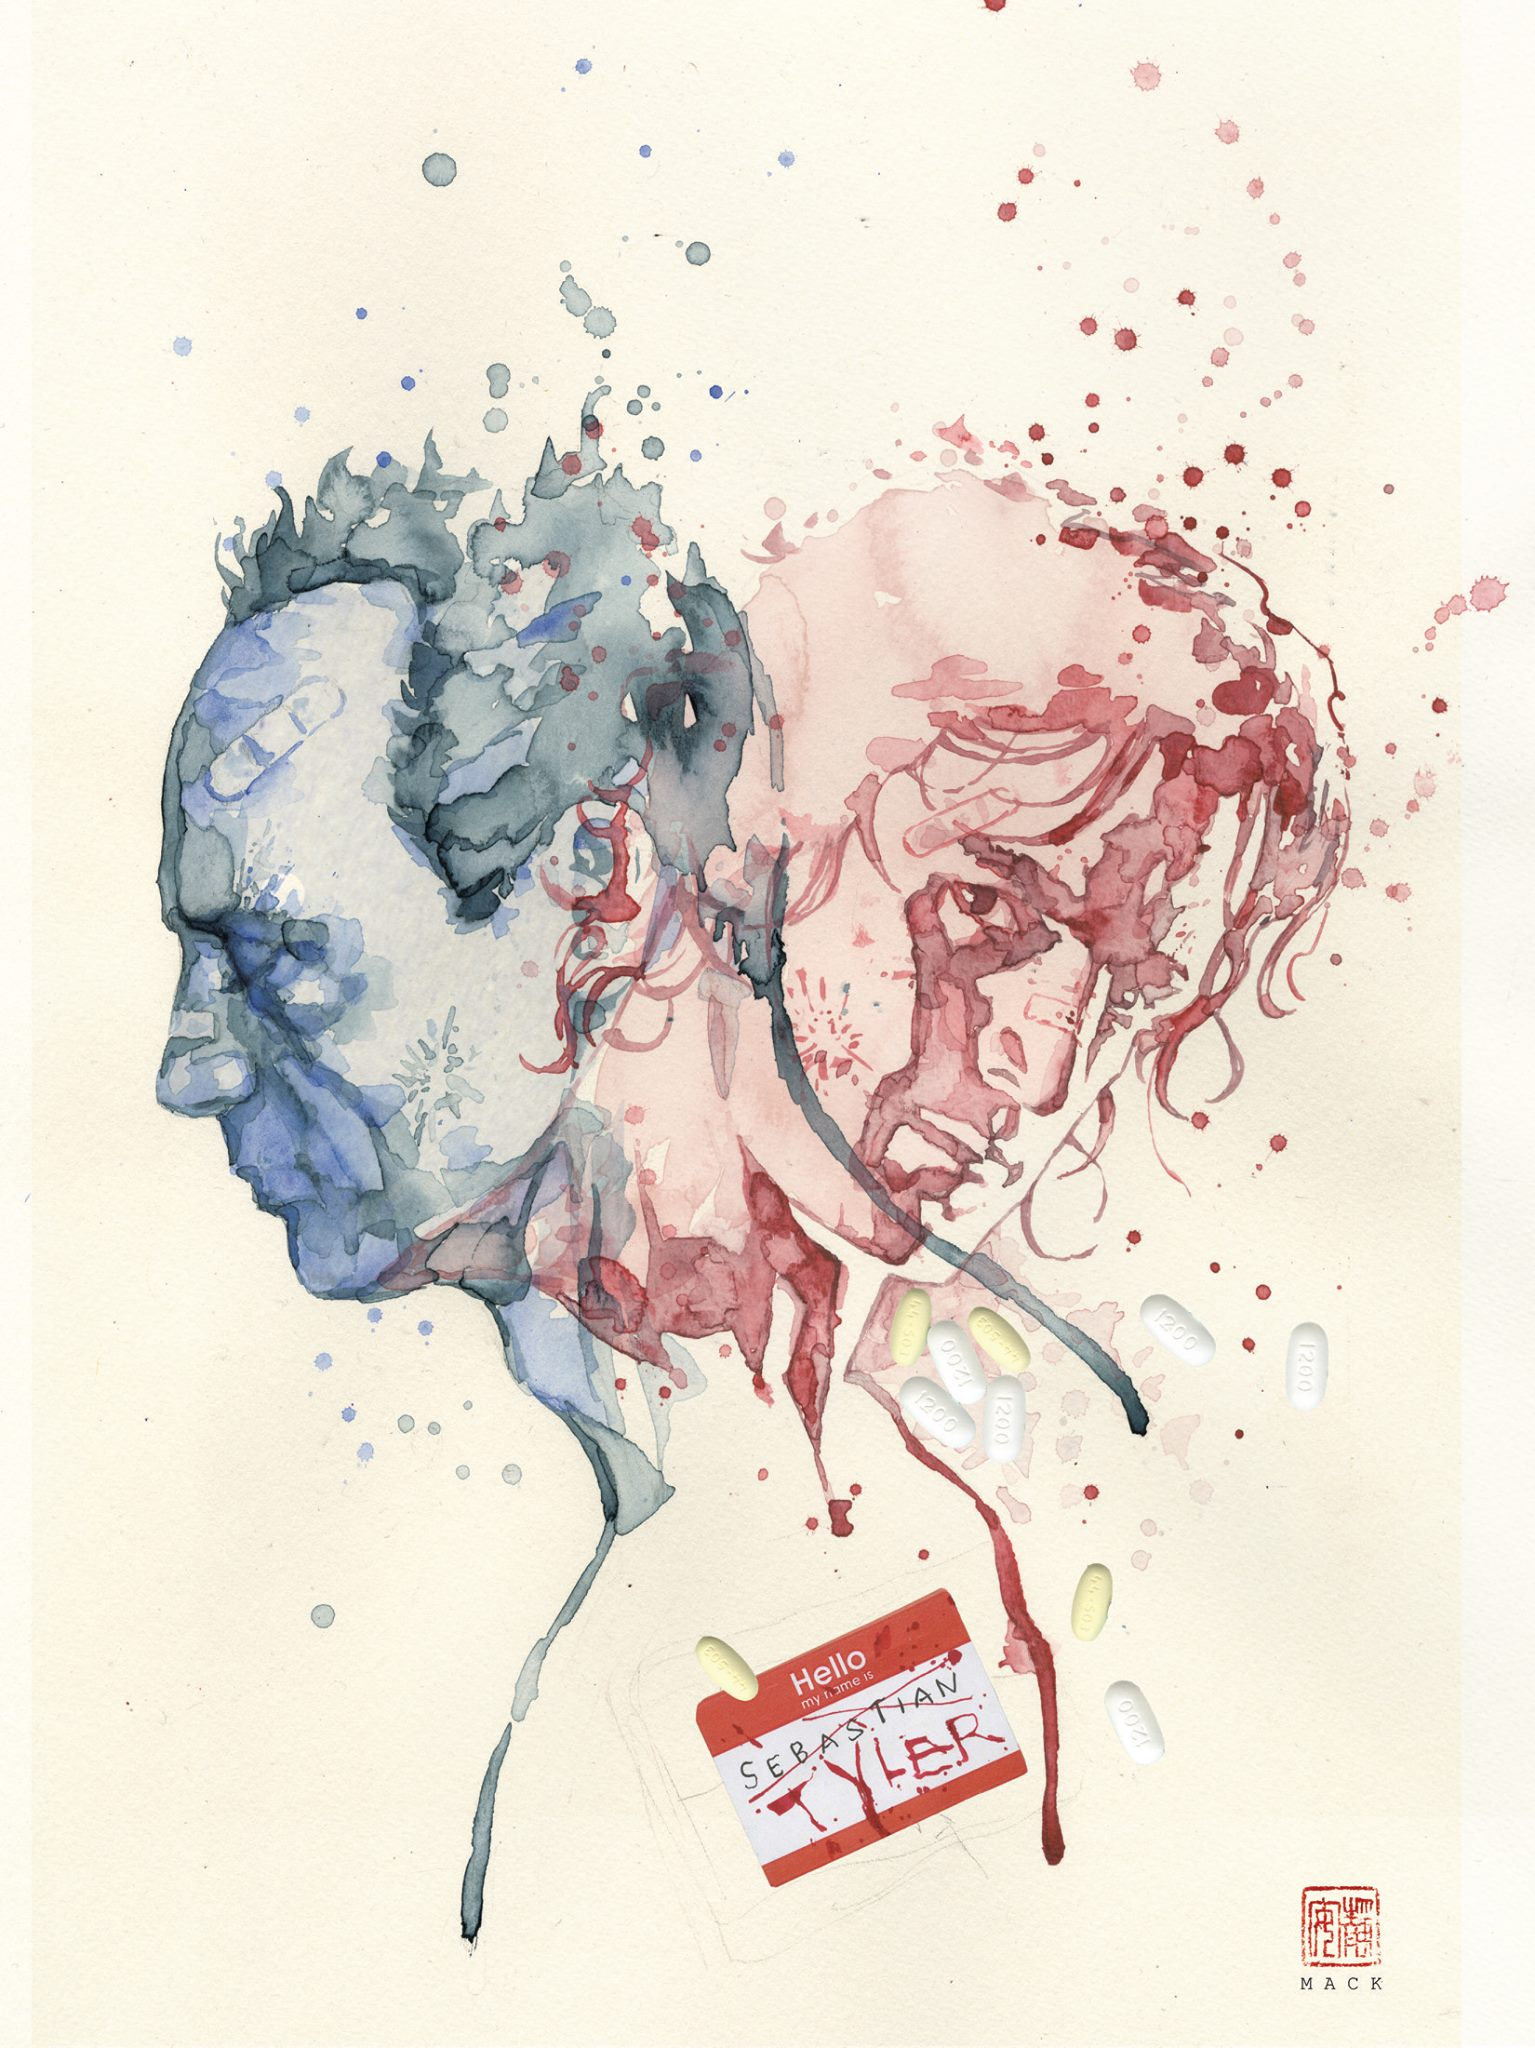 Mack And Palahniuk Break The Rules And Talk About Fight Club 2  13th  Dimension,ics, Creators, Culture